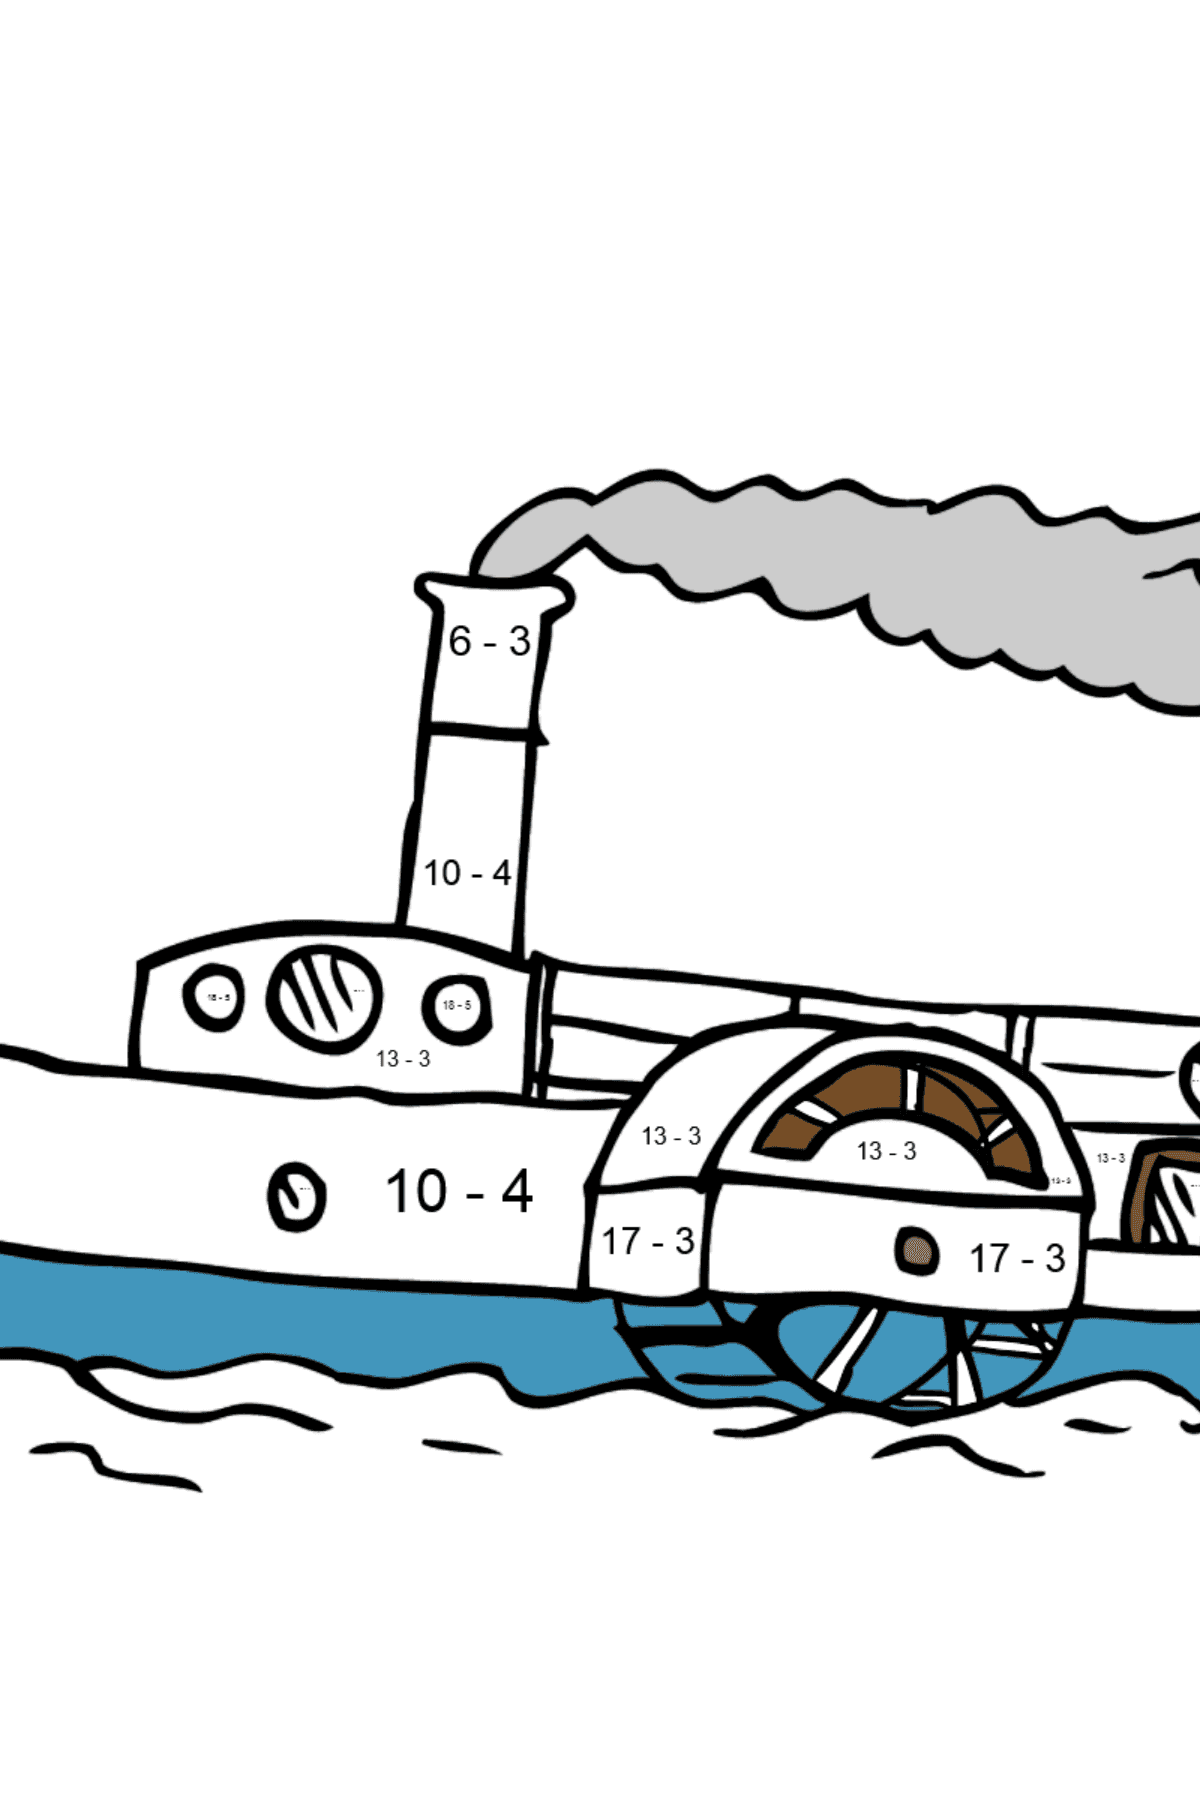 Coloring Page - A Ship with a Paddle Wheel - Math Coloring - Subtraction for Kids